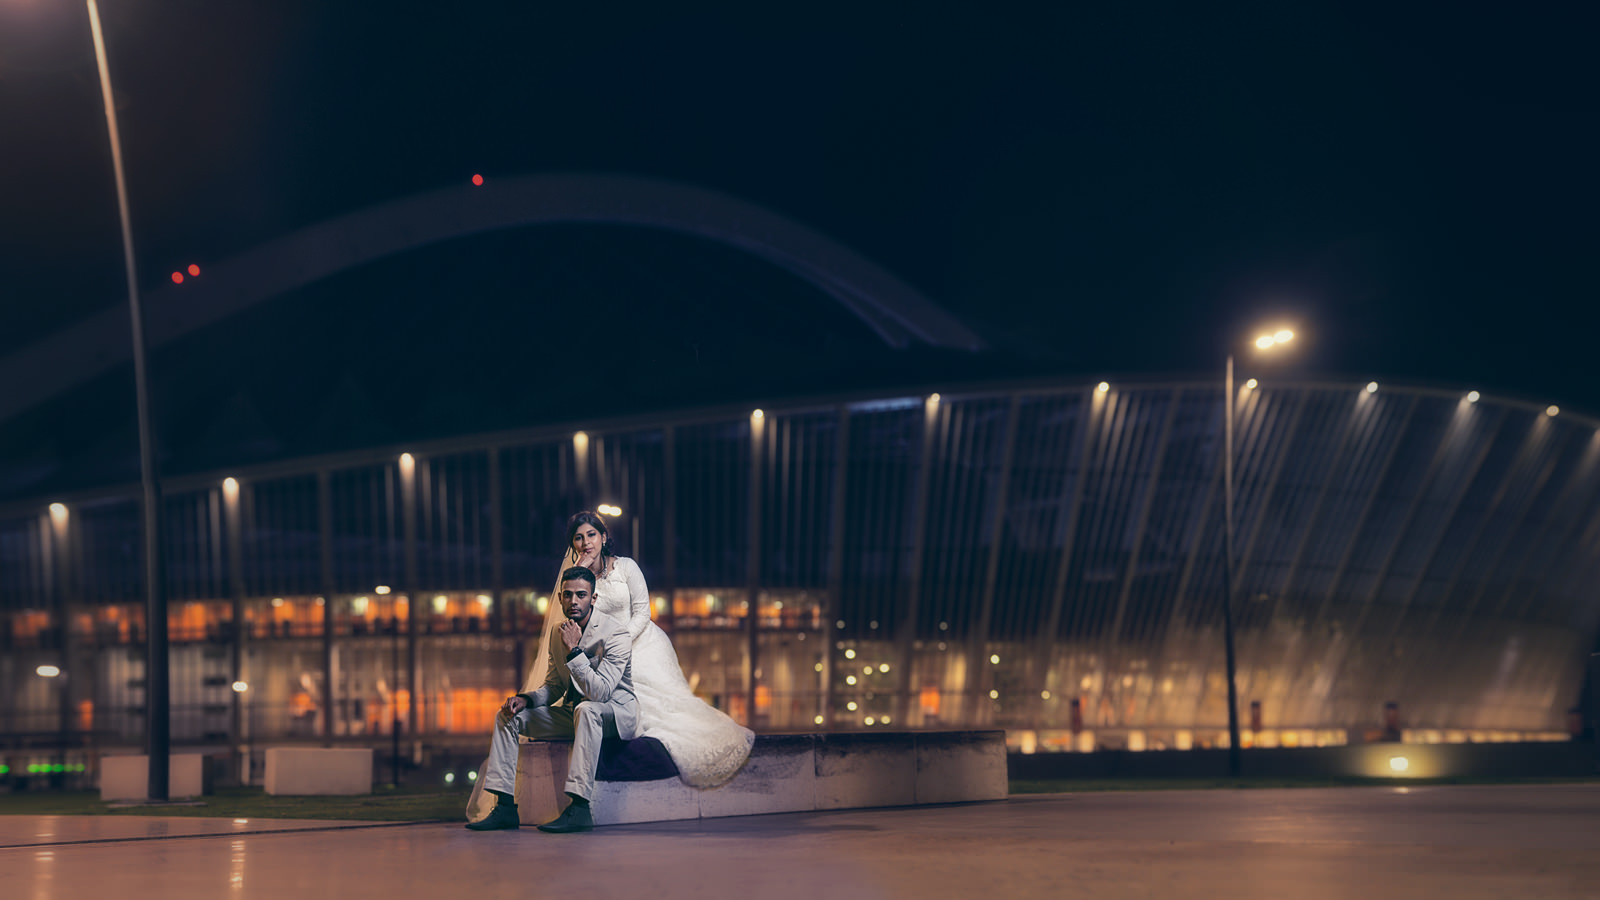 Reservoir hills islamic centre muslim bride and groom moses mabhida portrait creative shoot